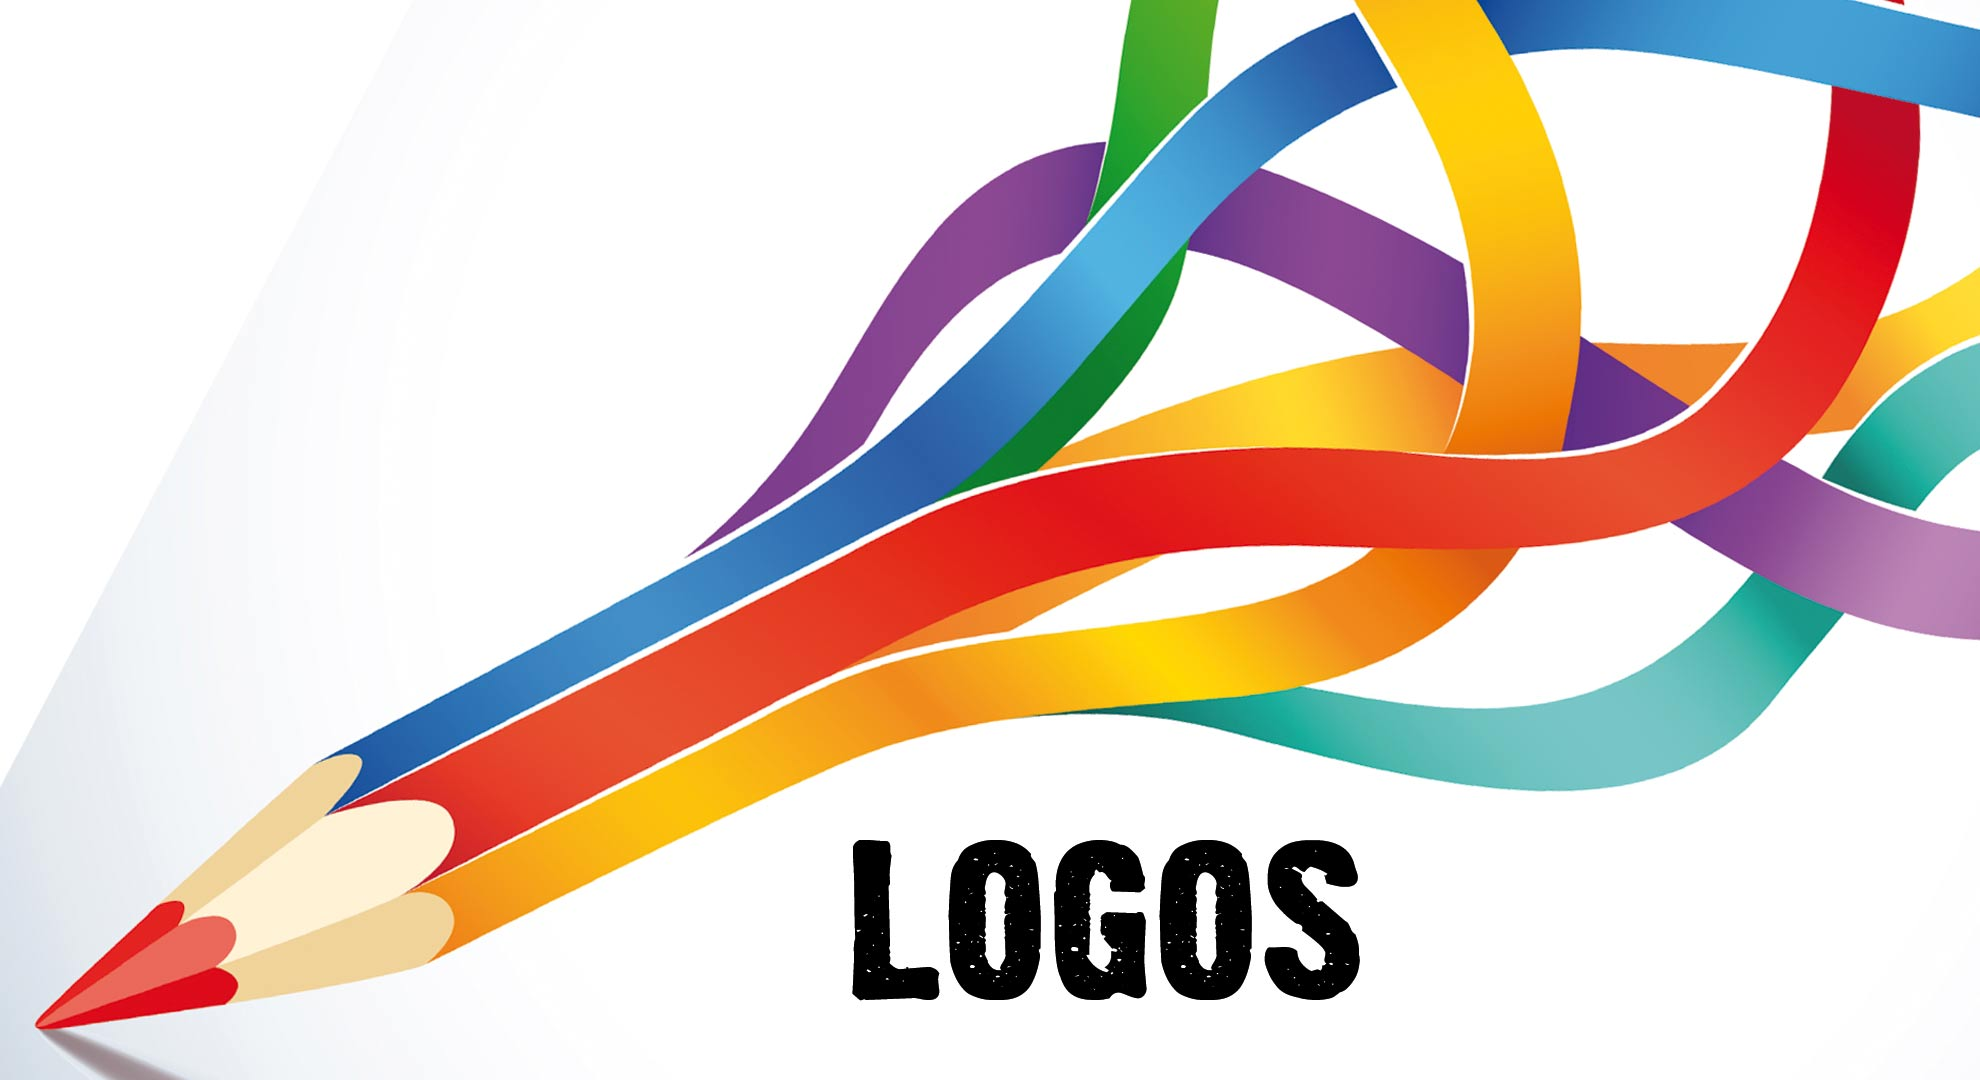 What to expect from a logo designer